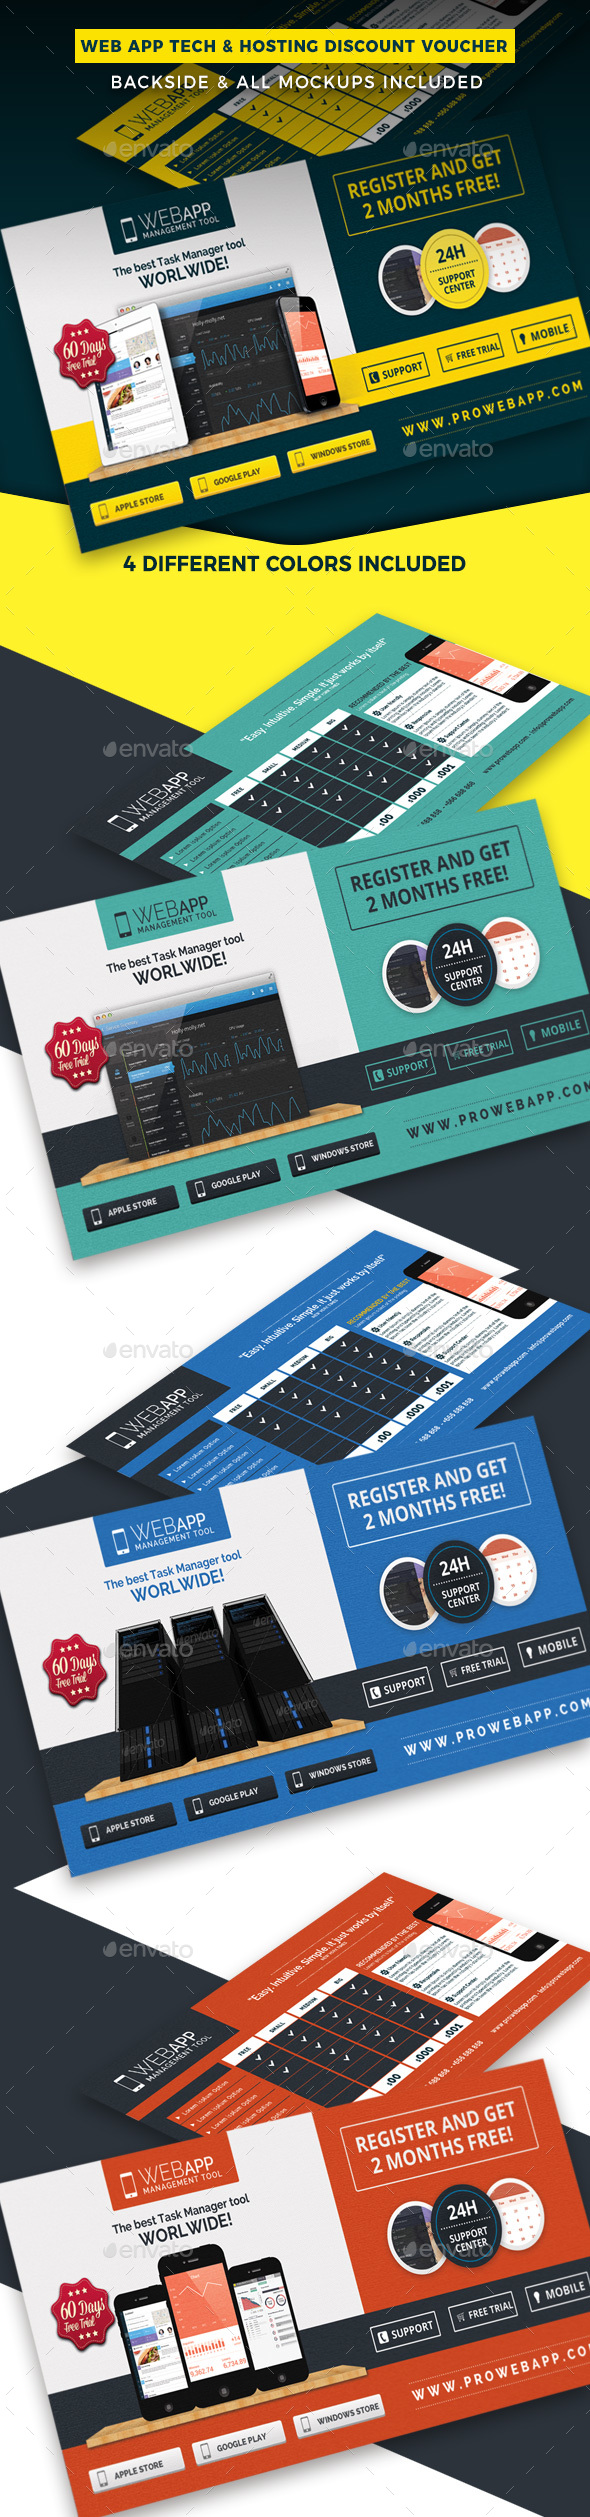 Web App Tech and Hosting Voucher Template - Loyalty Cards Cards & Invites